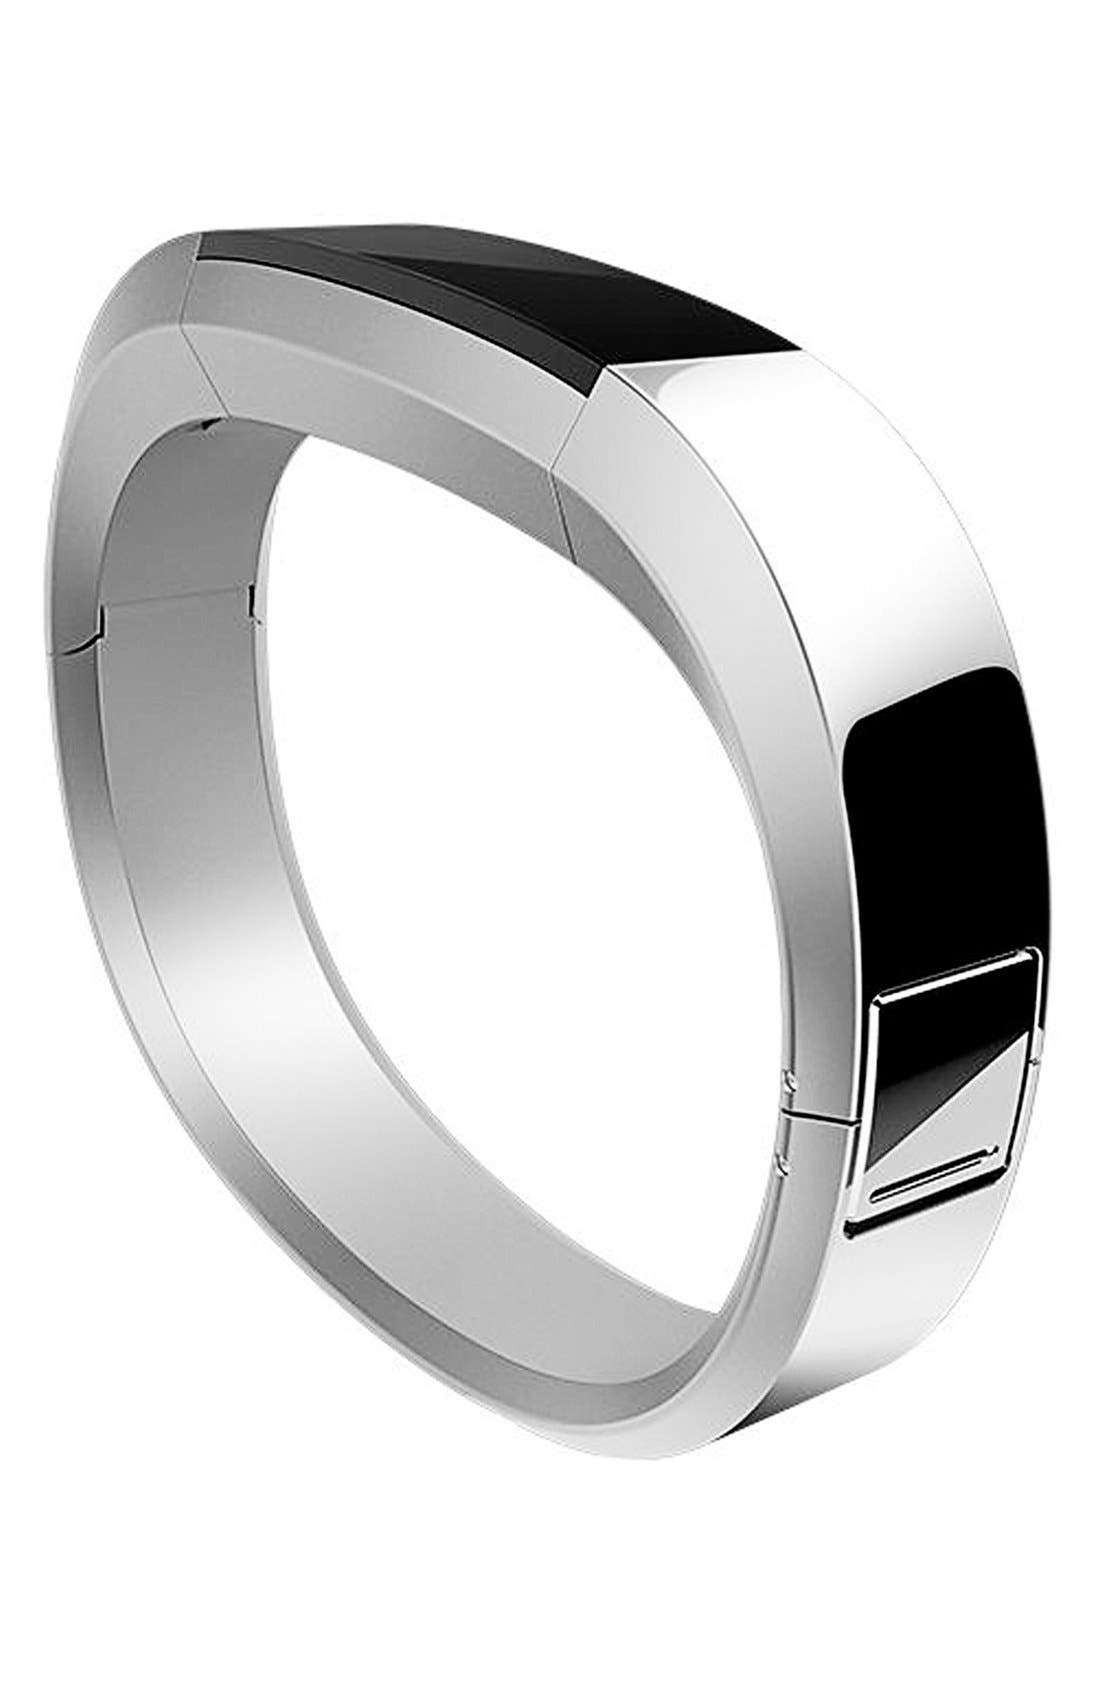 Alternate Image 1 Selected - Fitbit 'Alta' Stainless Steel Accessory Band